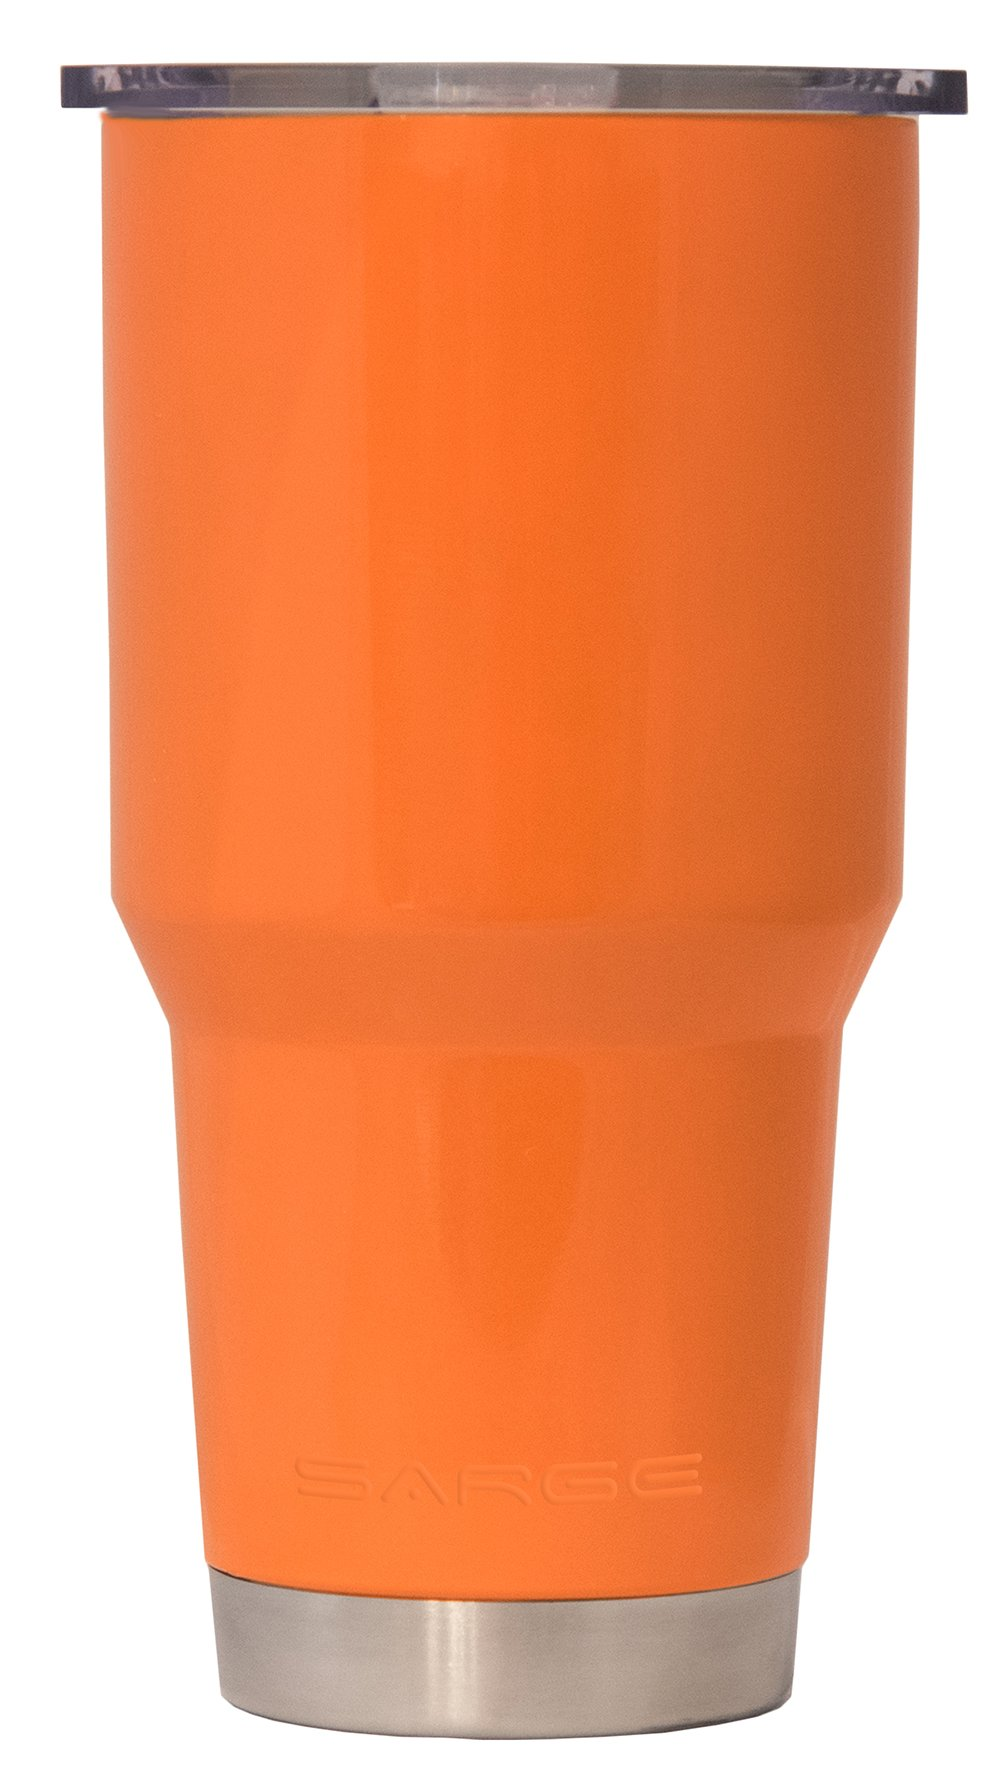 Sarge Knives DC-30OR 30 oz Stainless steel Tumbler with Shatterproof Lid and Orange Desert Cup